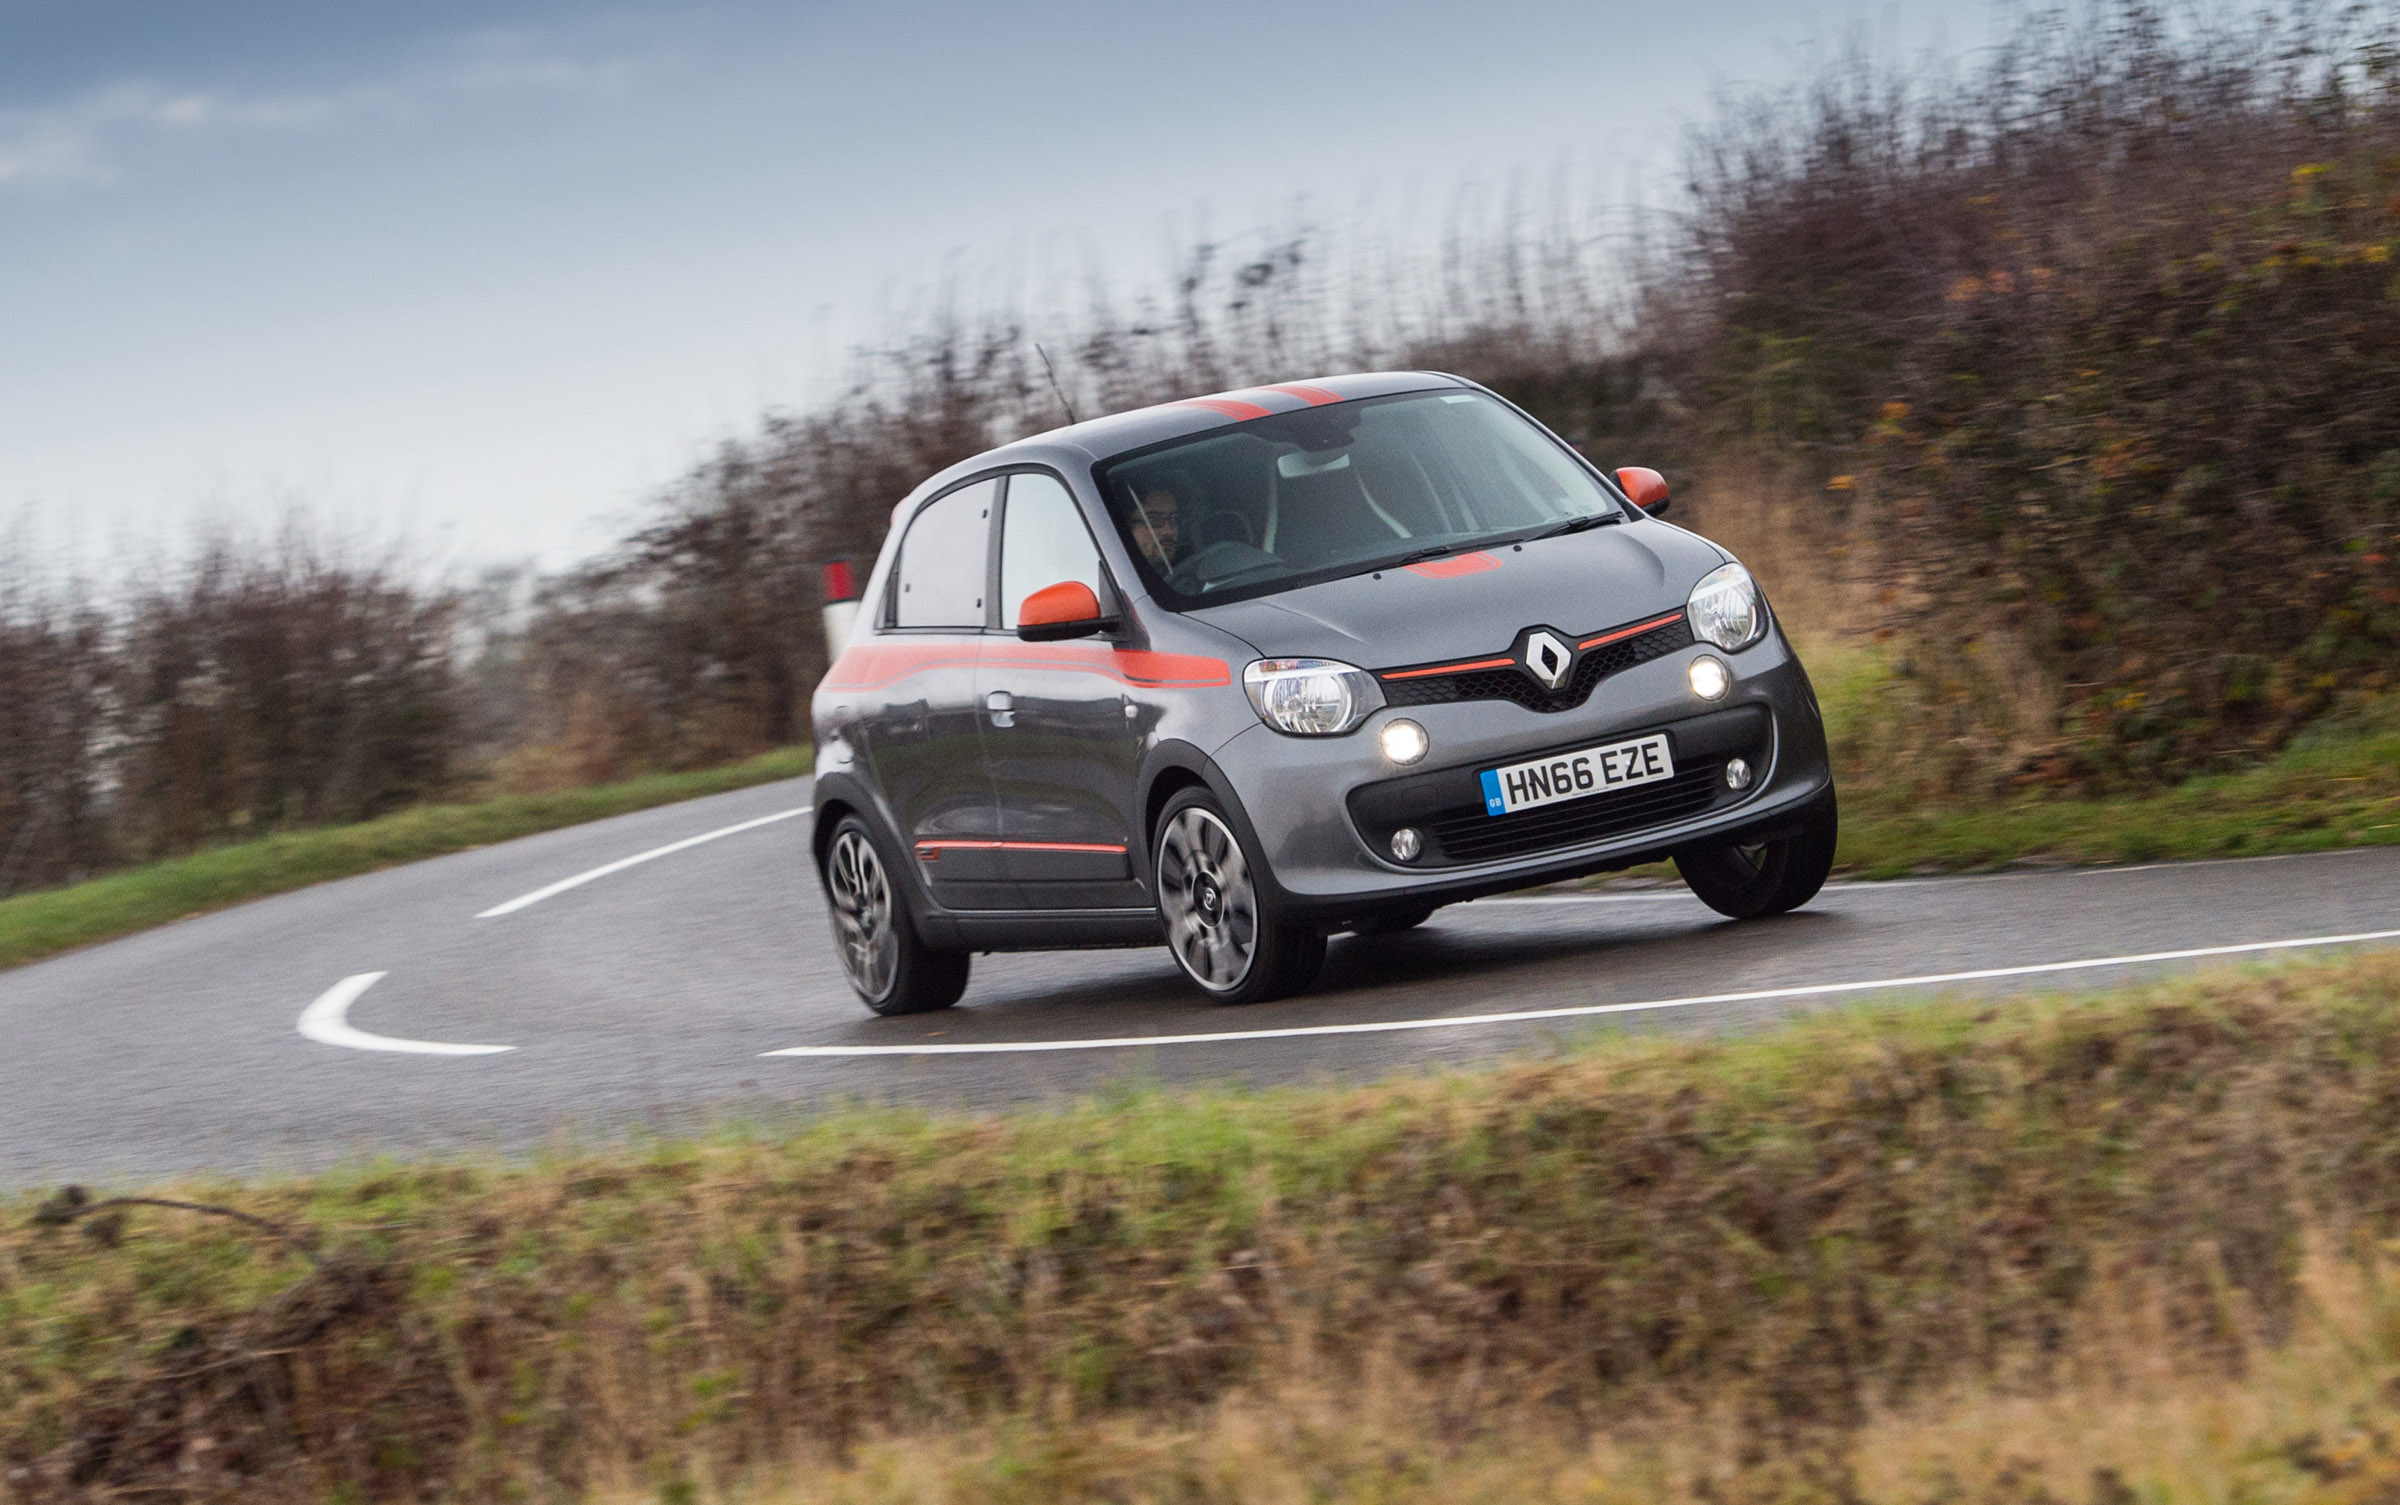 Renault Twingo Gt Review Prices Specs And 0 60 Time Evo